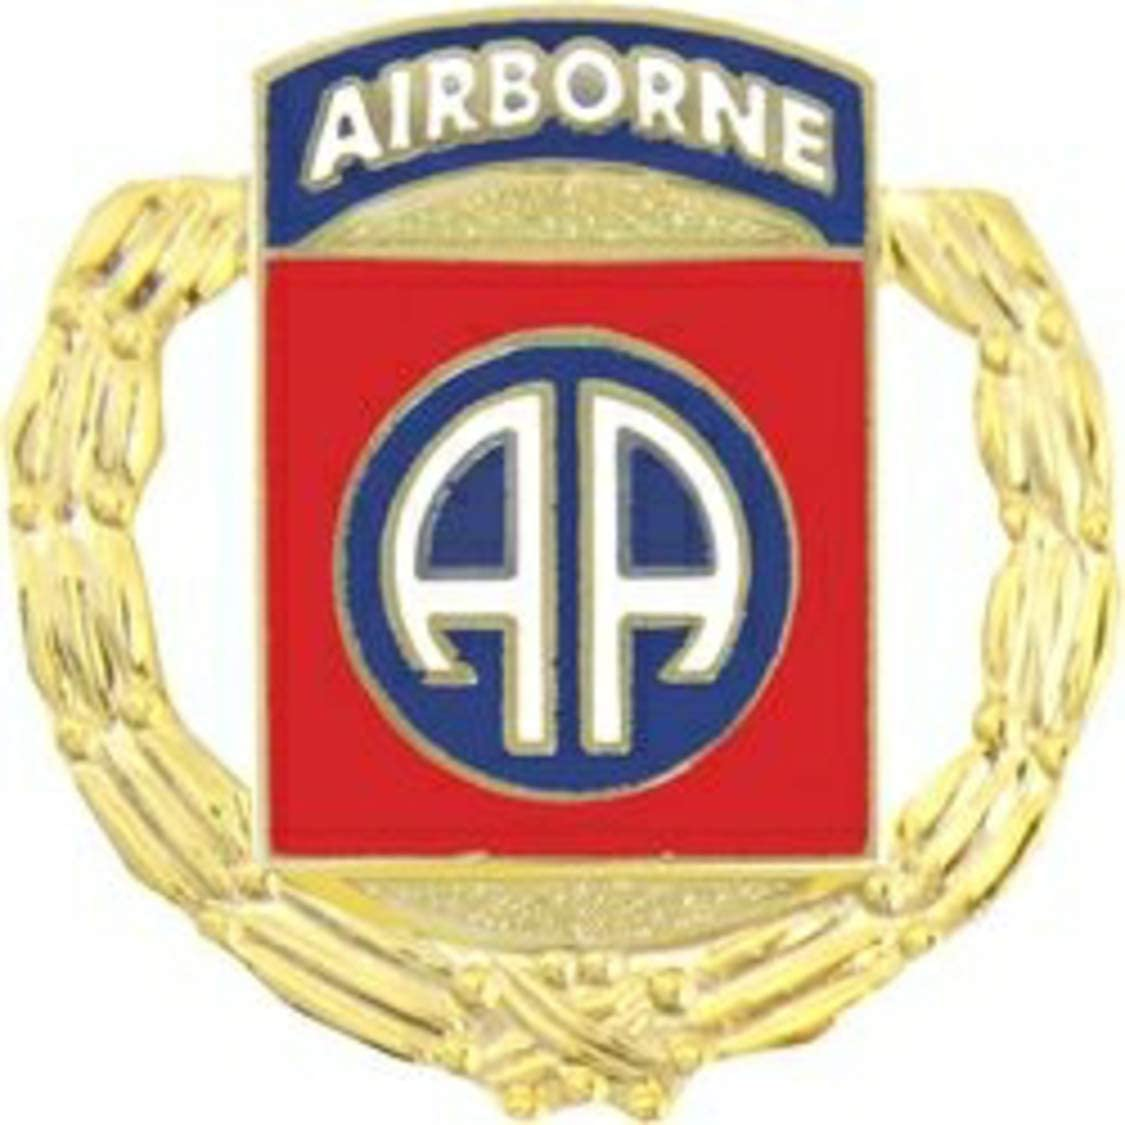 US Army 82nd Airborne Division Gold Wreath Lapel Pin or Hat Pin (metal, 1 1/8